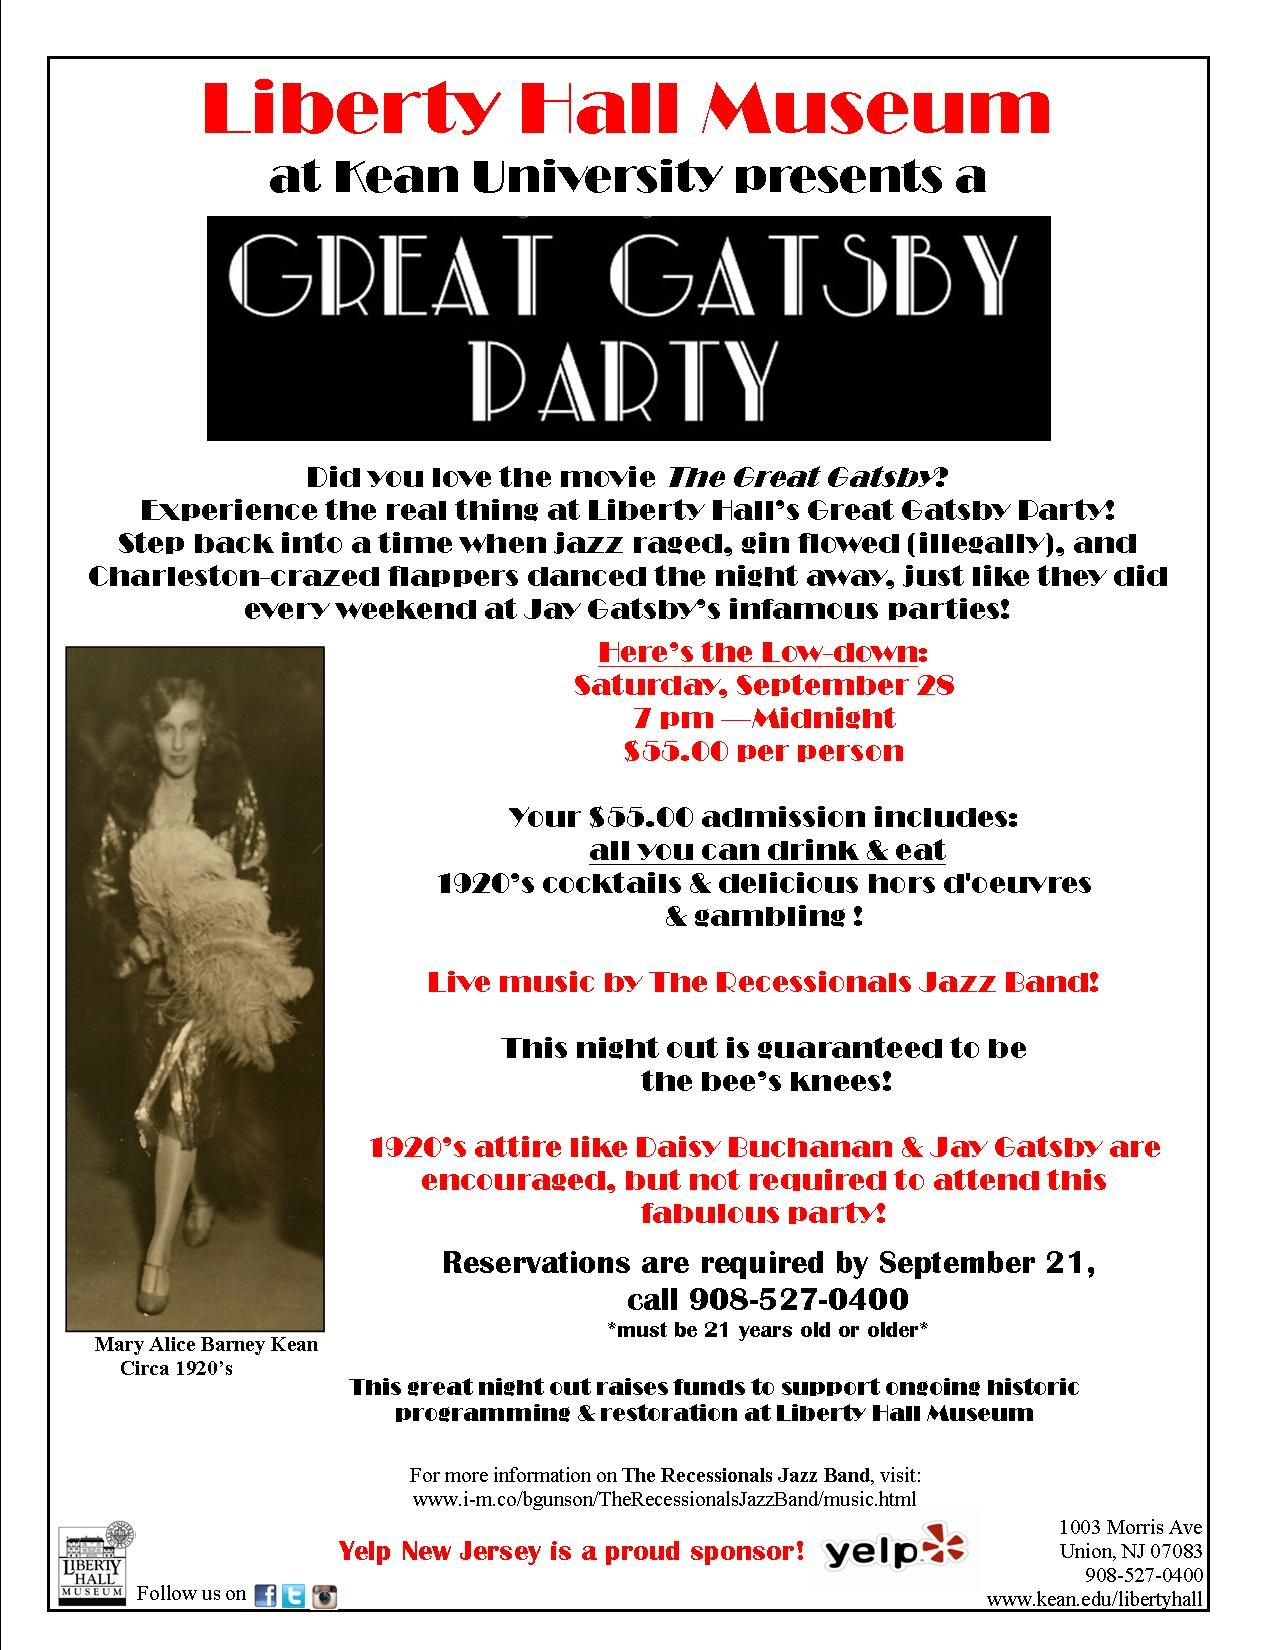 Join us for our Great Gatsby party on September 28th from 7-Midnight ...